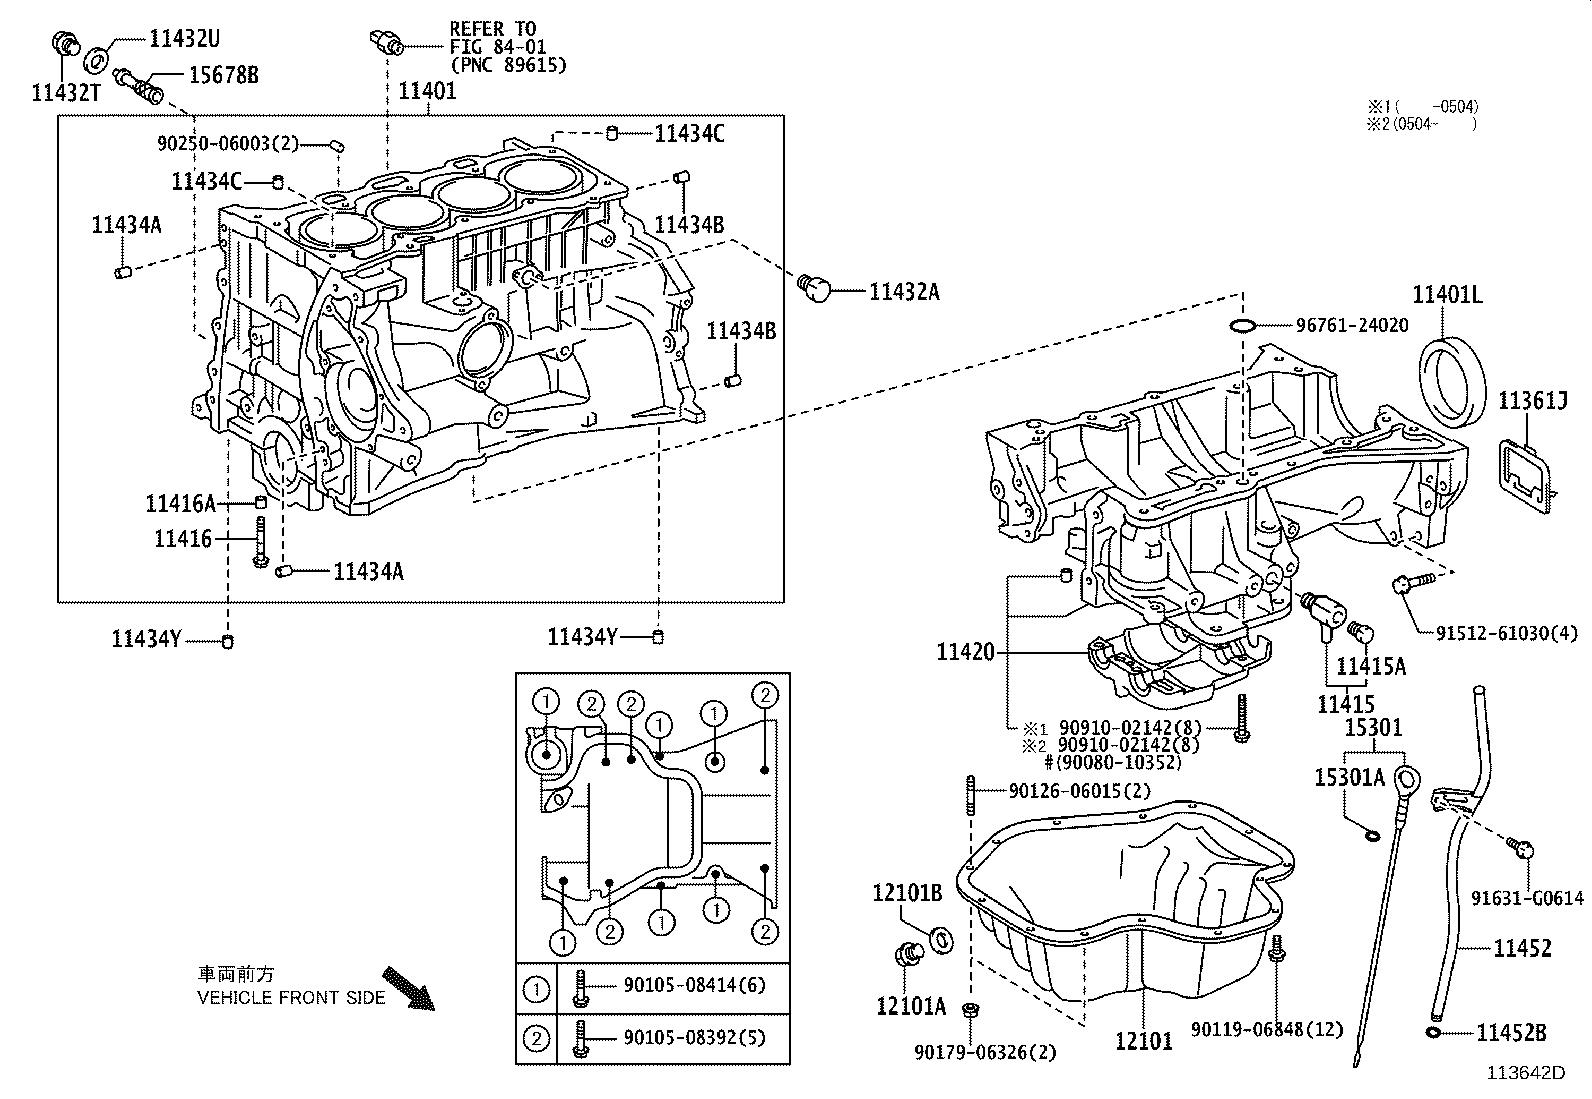 Diagram Scion Xb Engine Diagram Full Version Hd